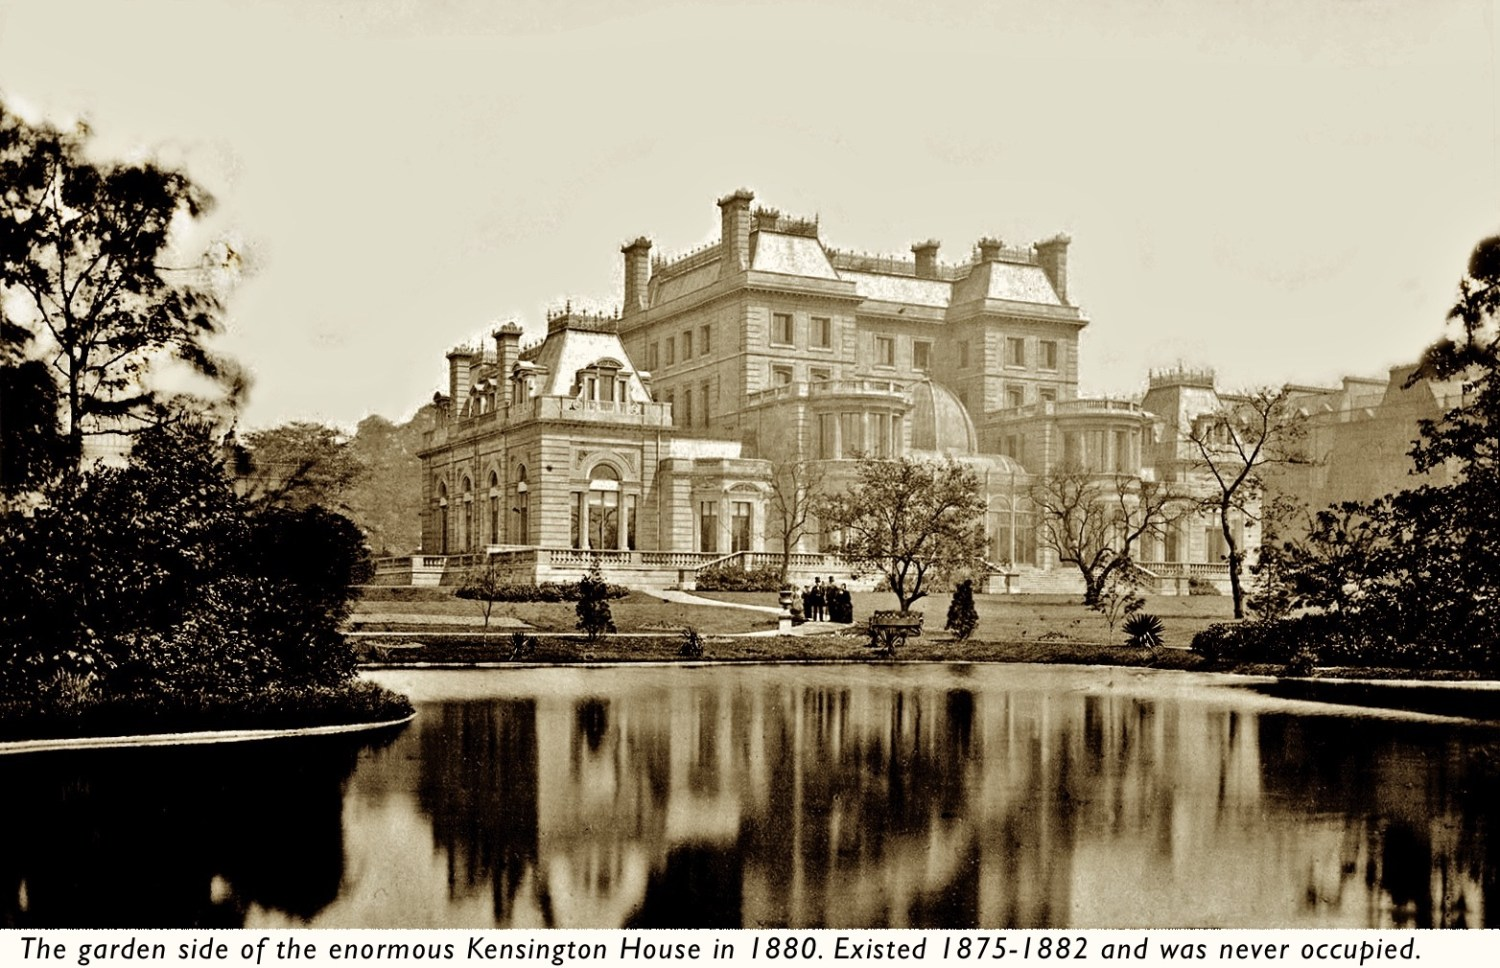 Kensington-House-1880-caption